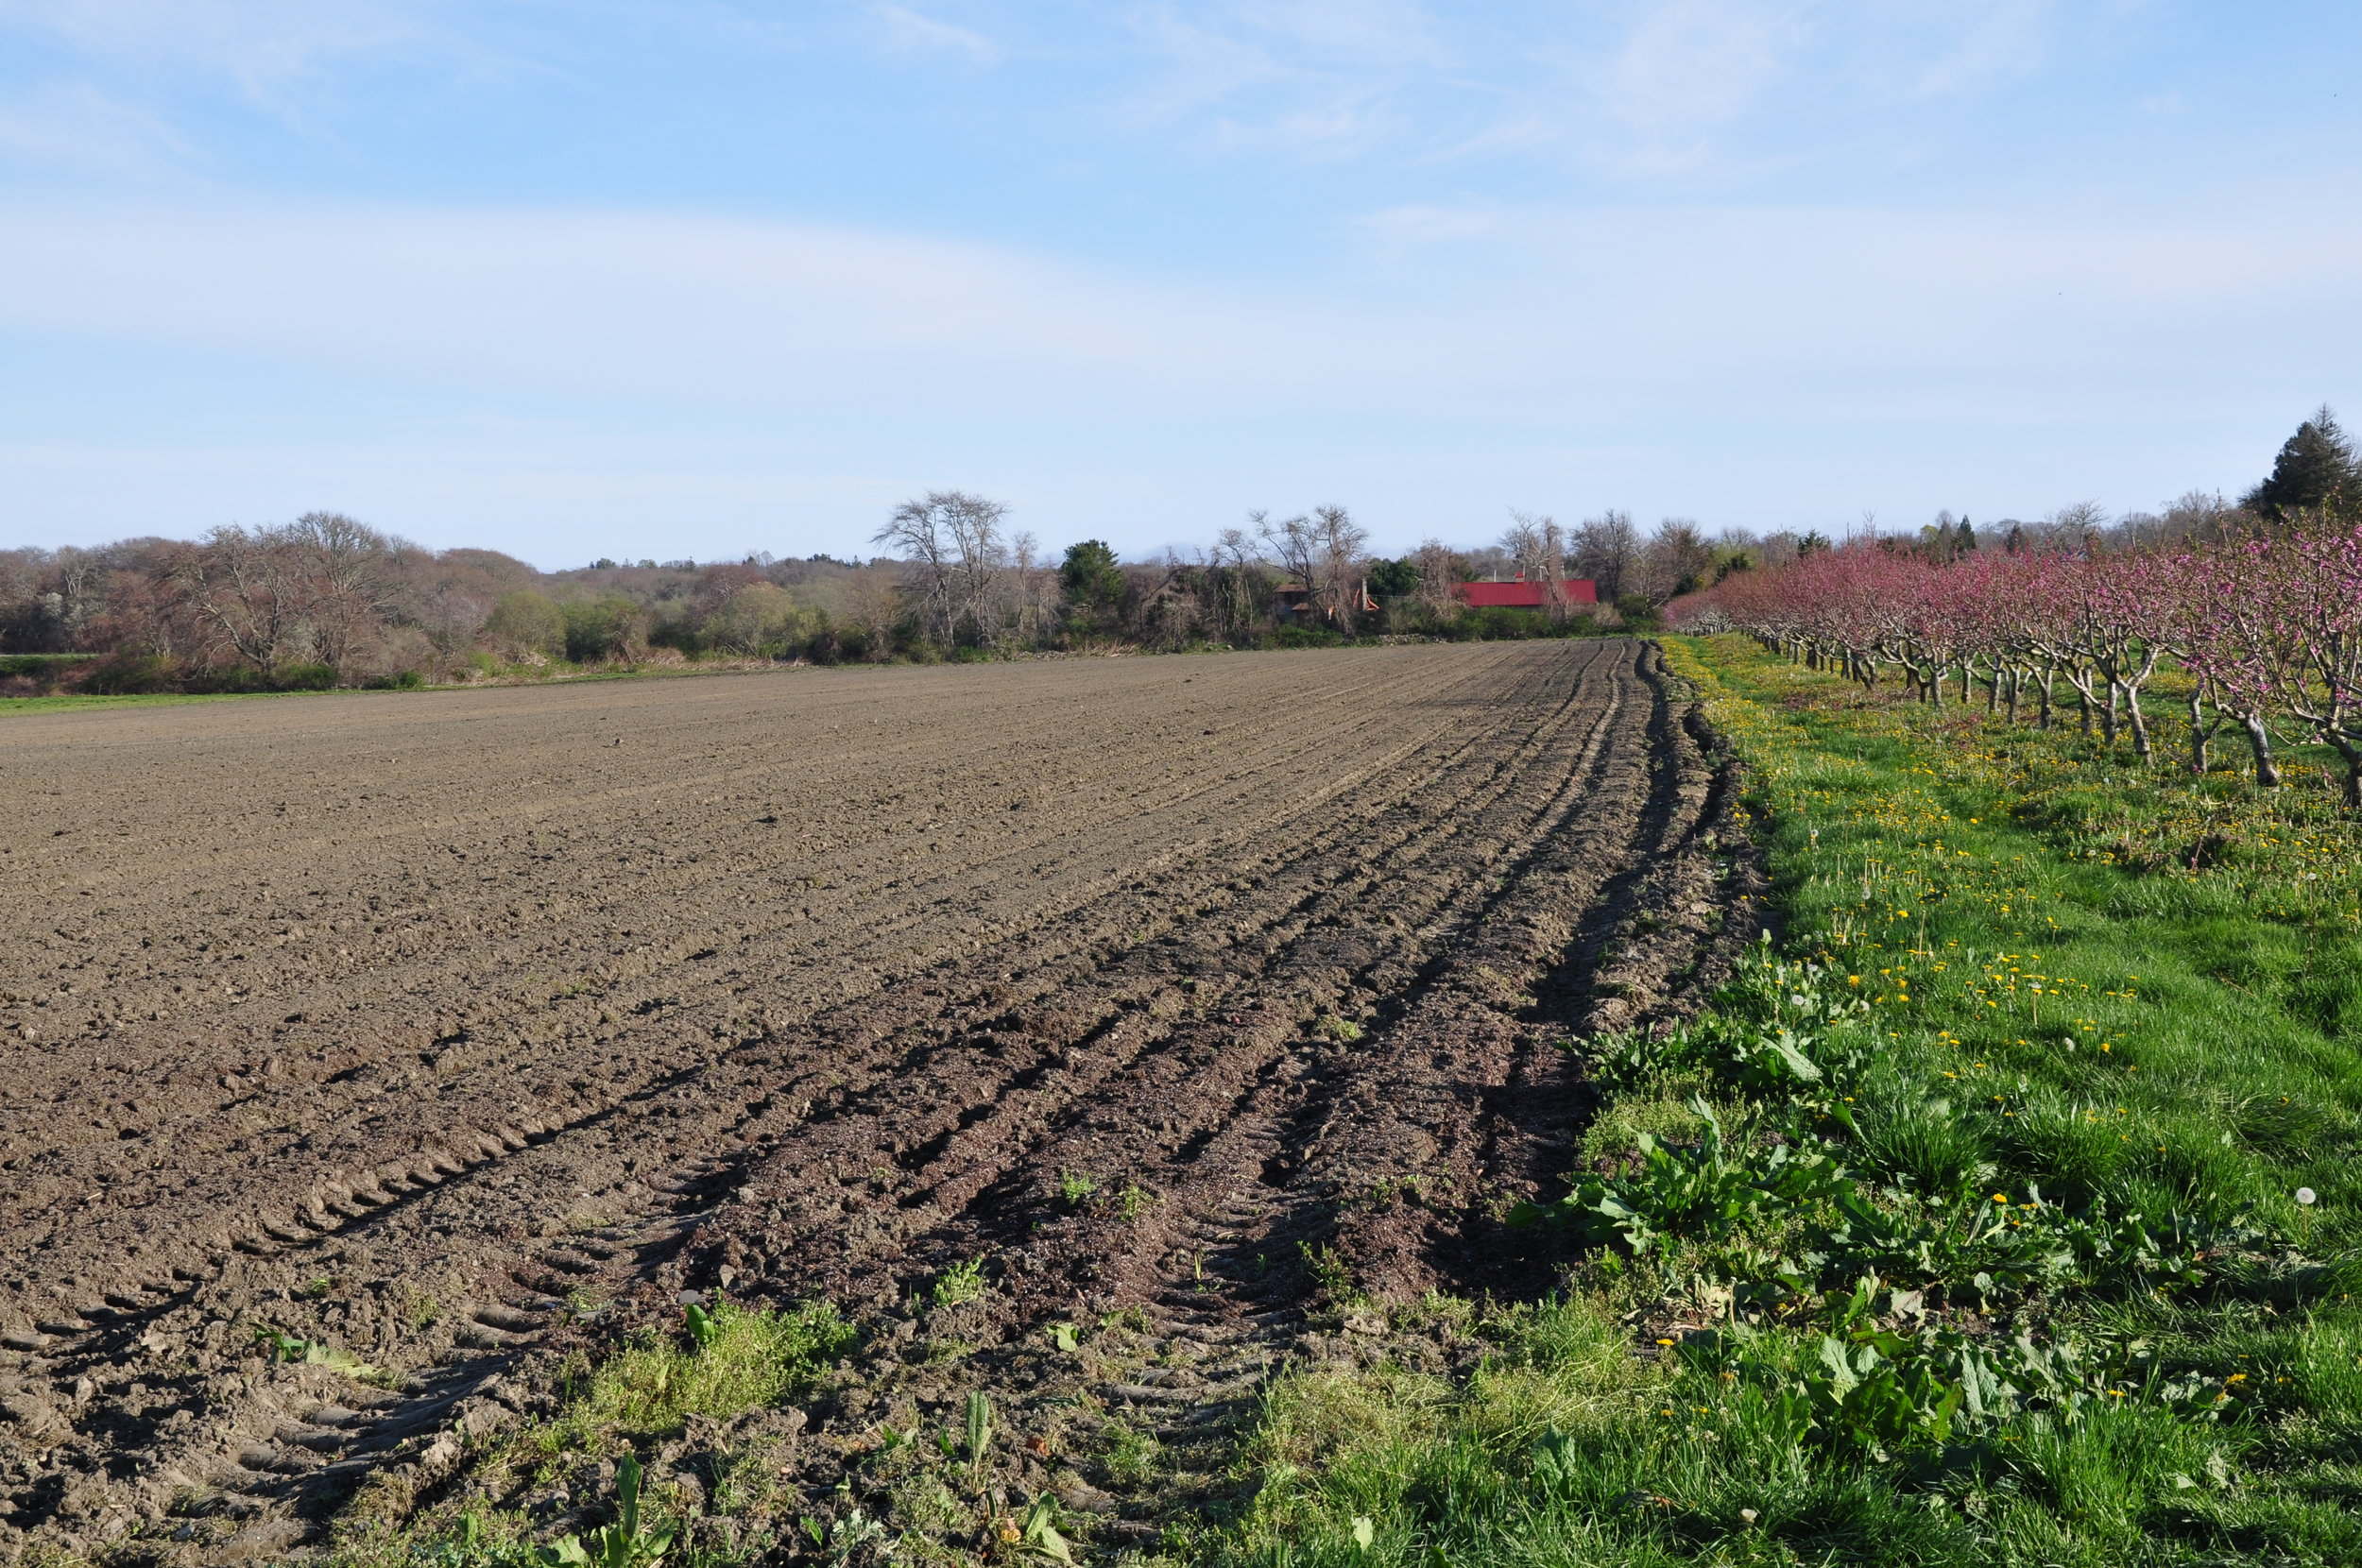 A glimpse from a day of planting 12 acres of potatoes.